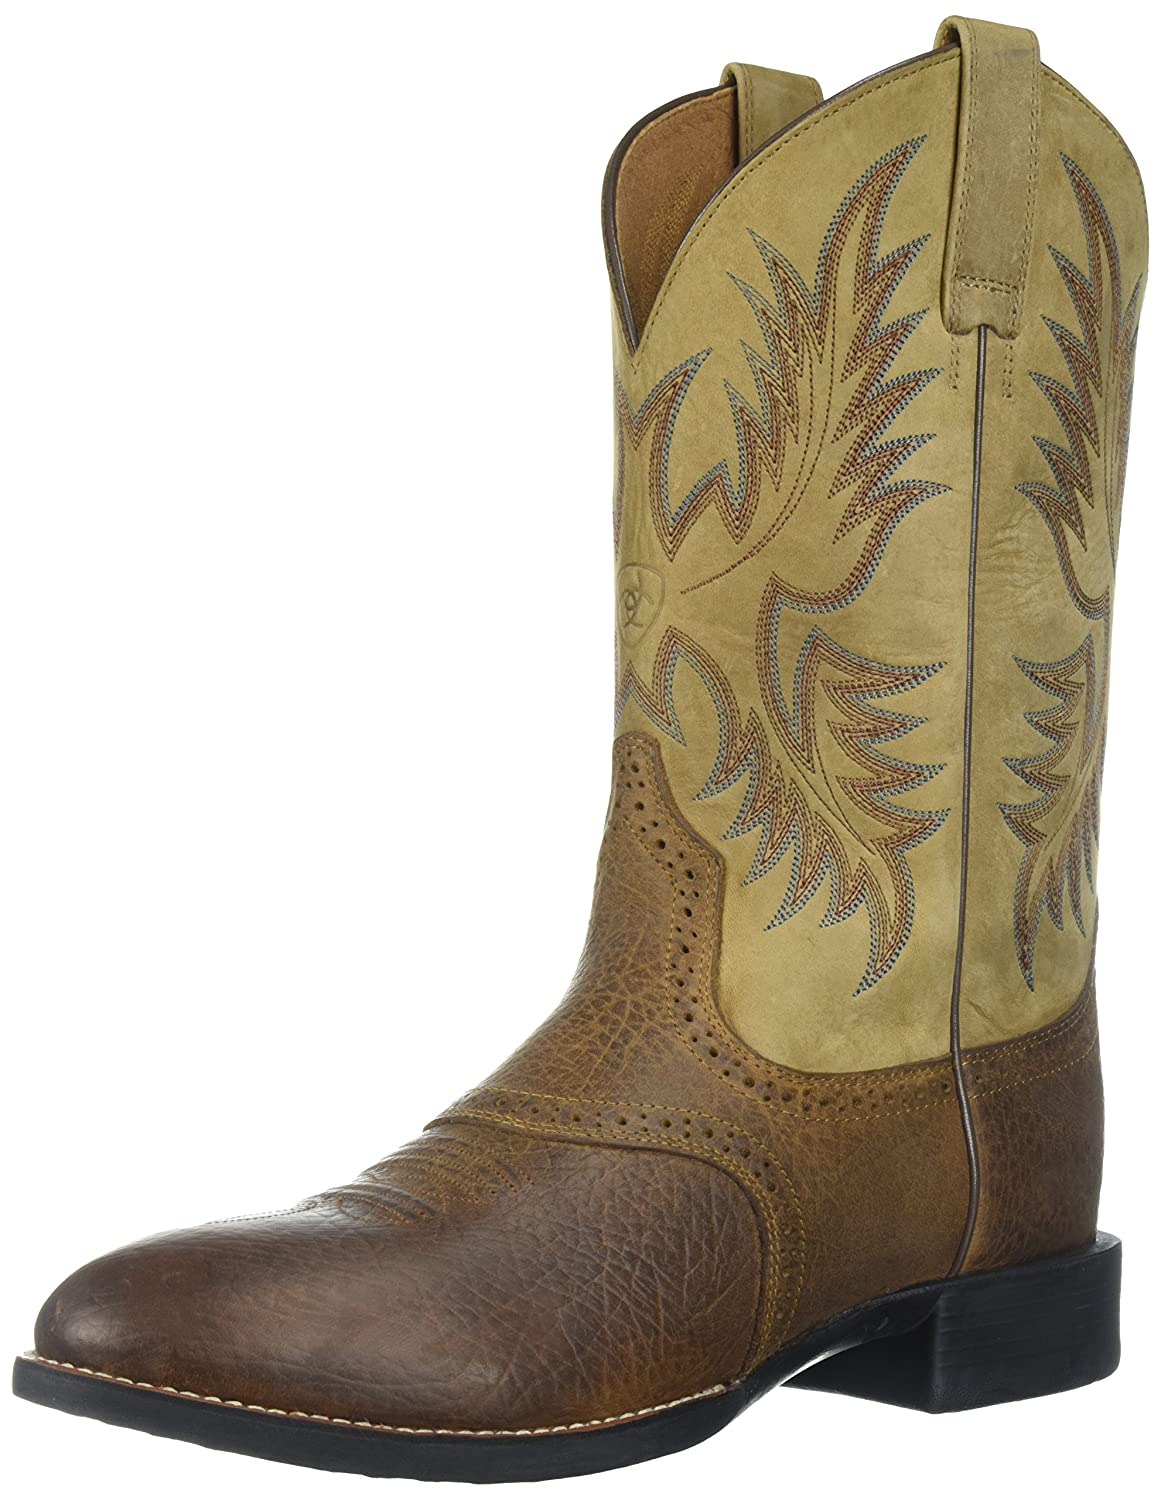 Ariat Men's Heritage Stockman Western Boot B00449ZPR6 10 B US|Tumbled Brown/ Beige